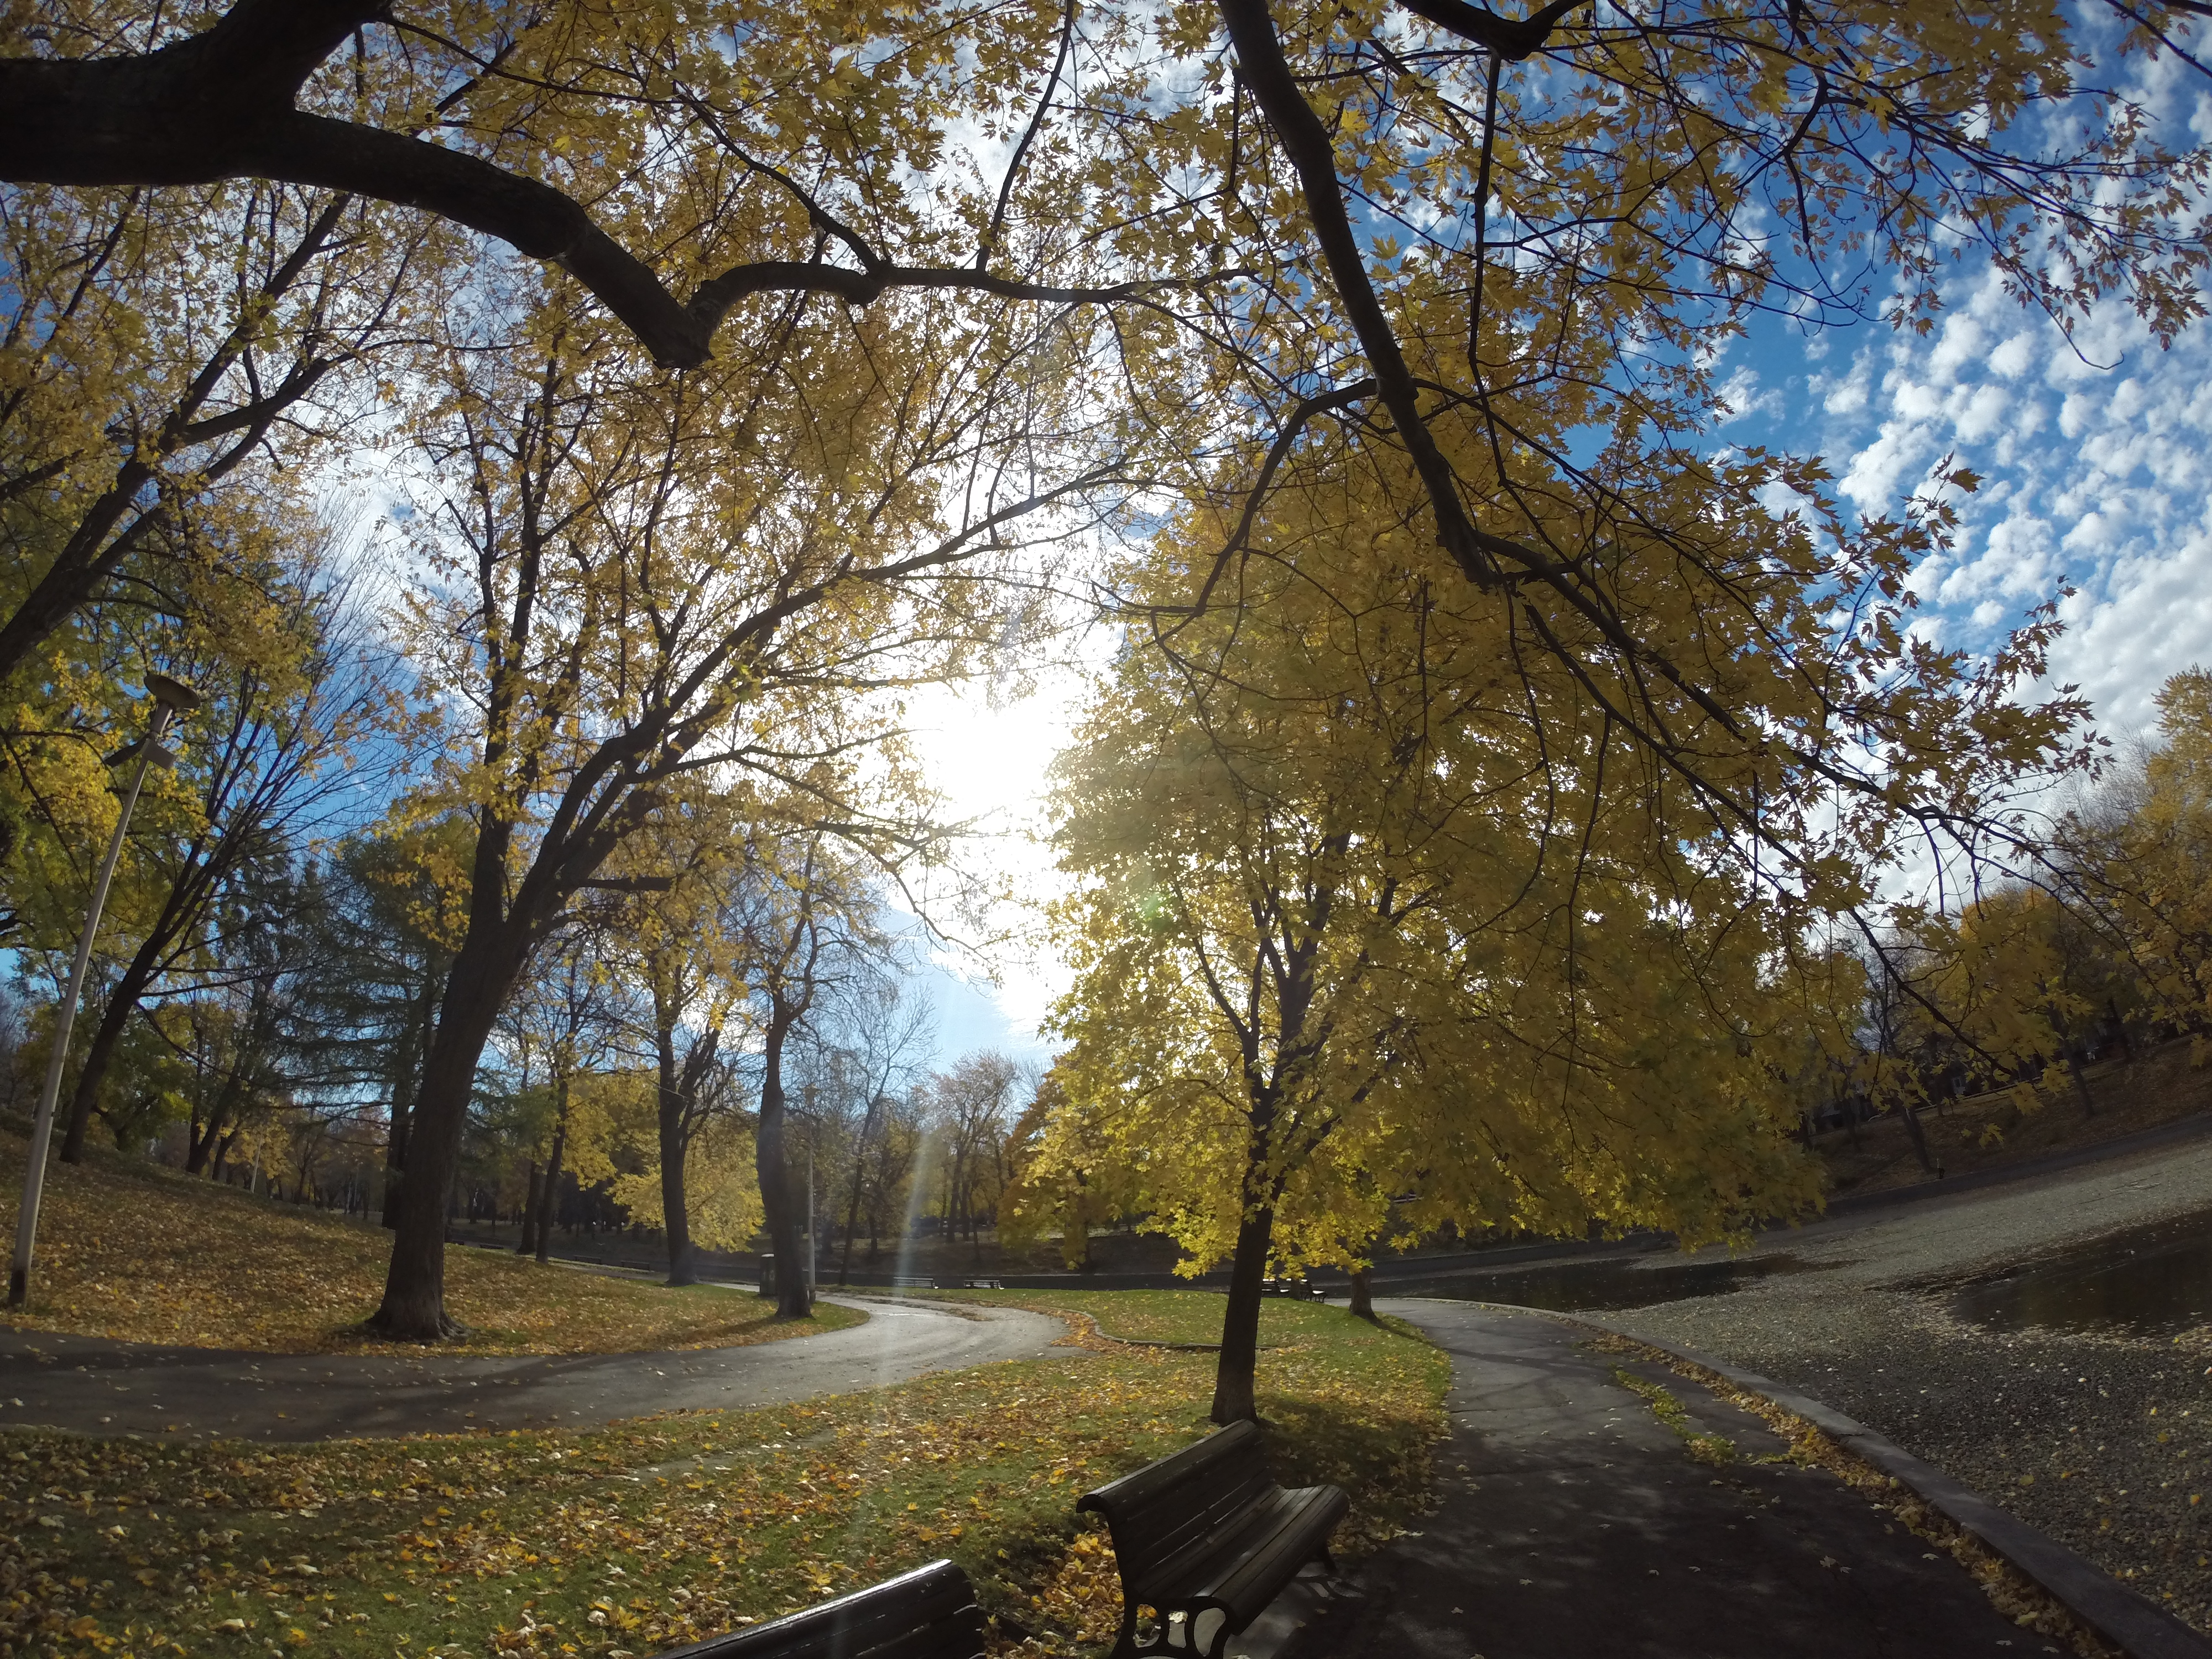 Autumn chill in Parc Lafontaine | My Journey Blog